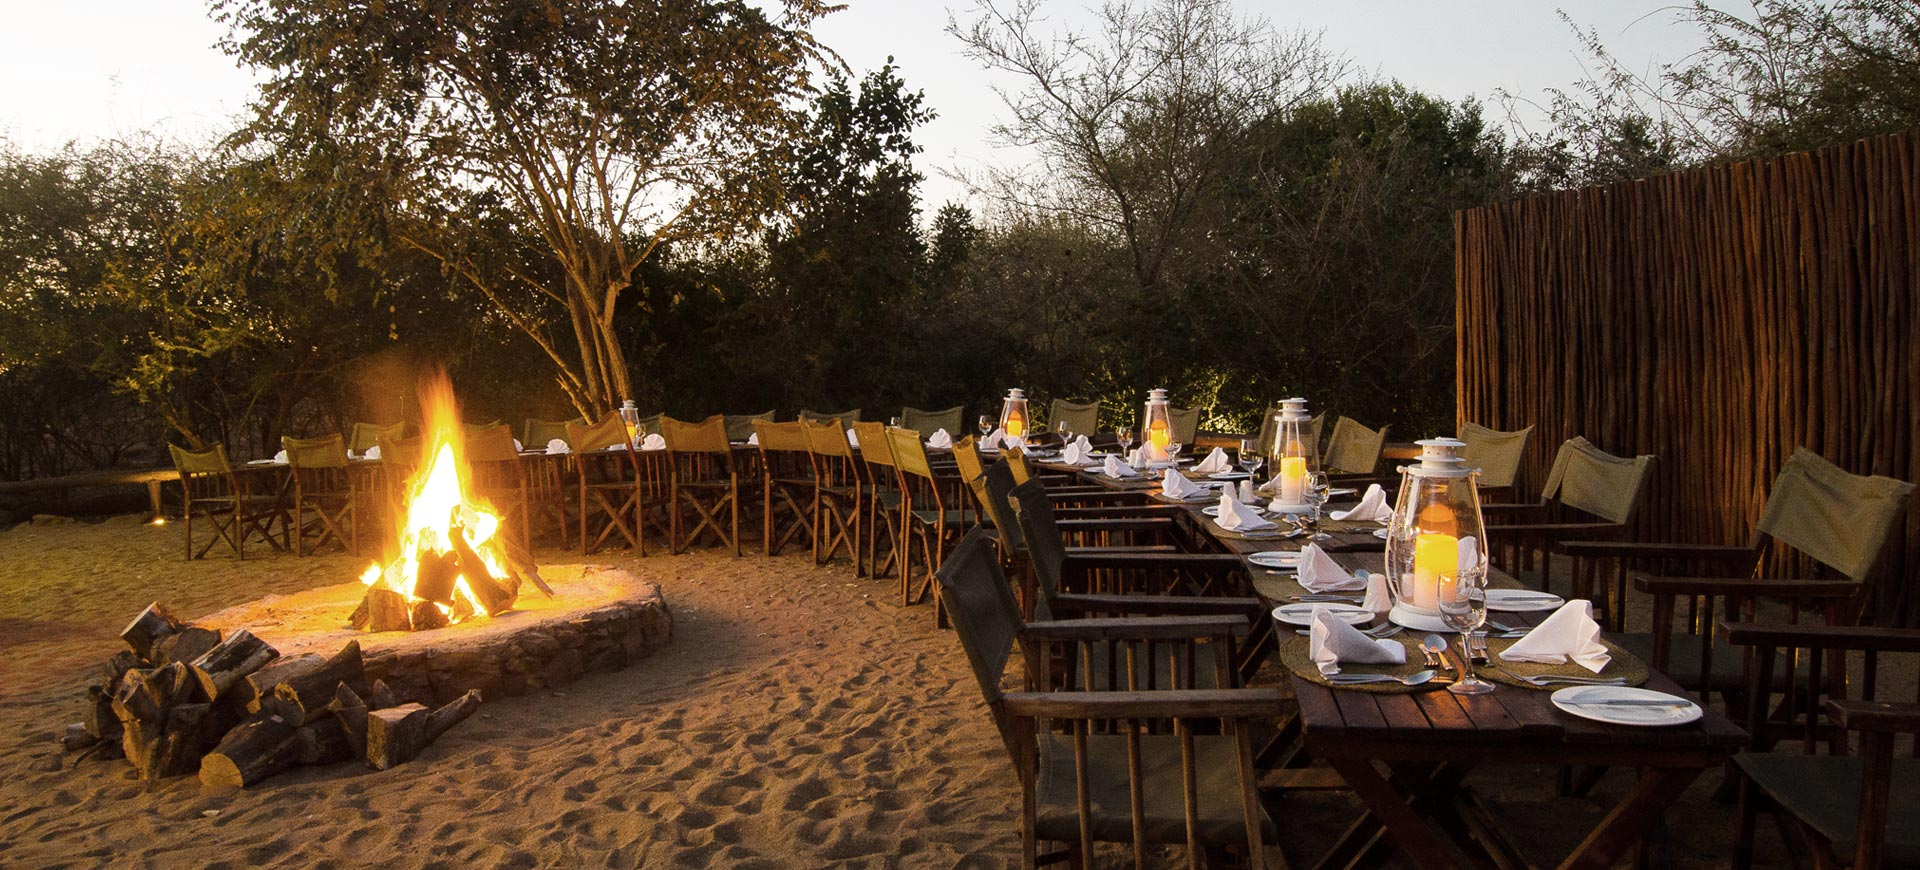 Shishangeni Safari Lodge